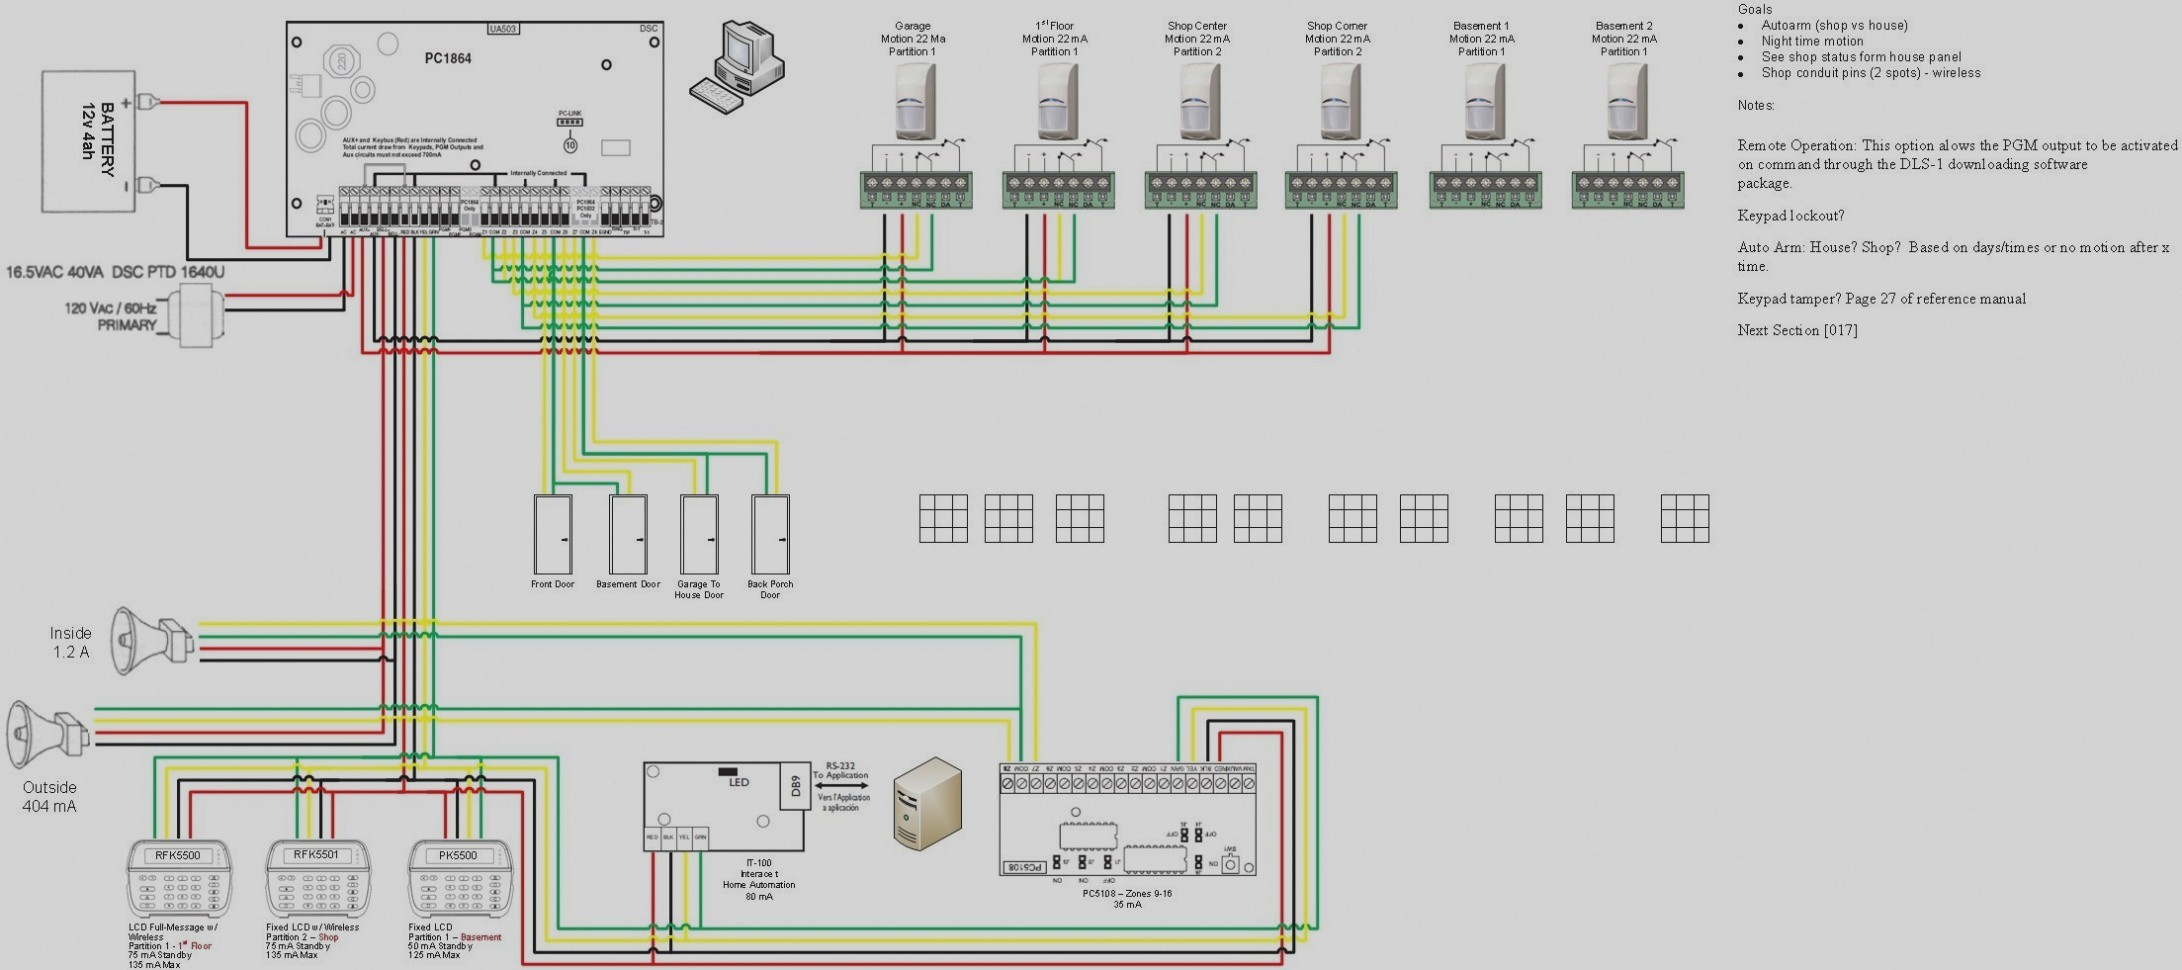 Alarm Wiring Diagrams for Cars Wiring Diagram for Home Alarm System Save Alarm System Wiring Of Alarm Wiring Diagrams for Cars